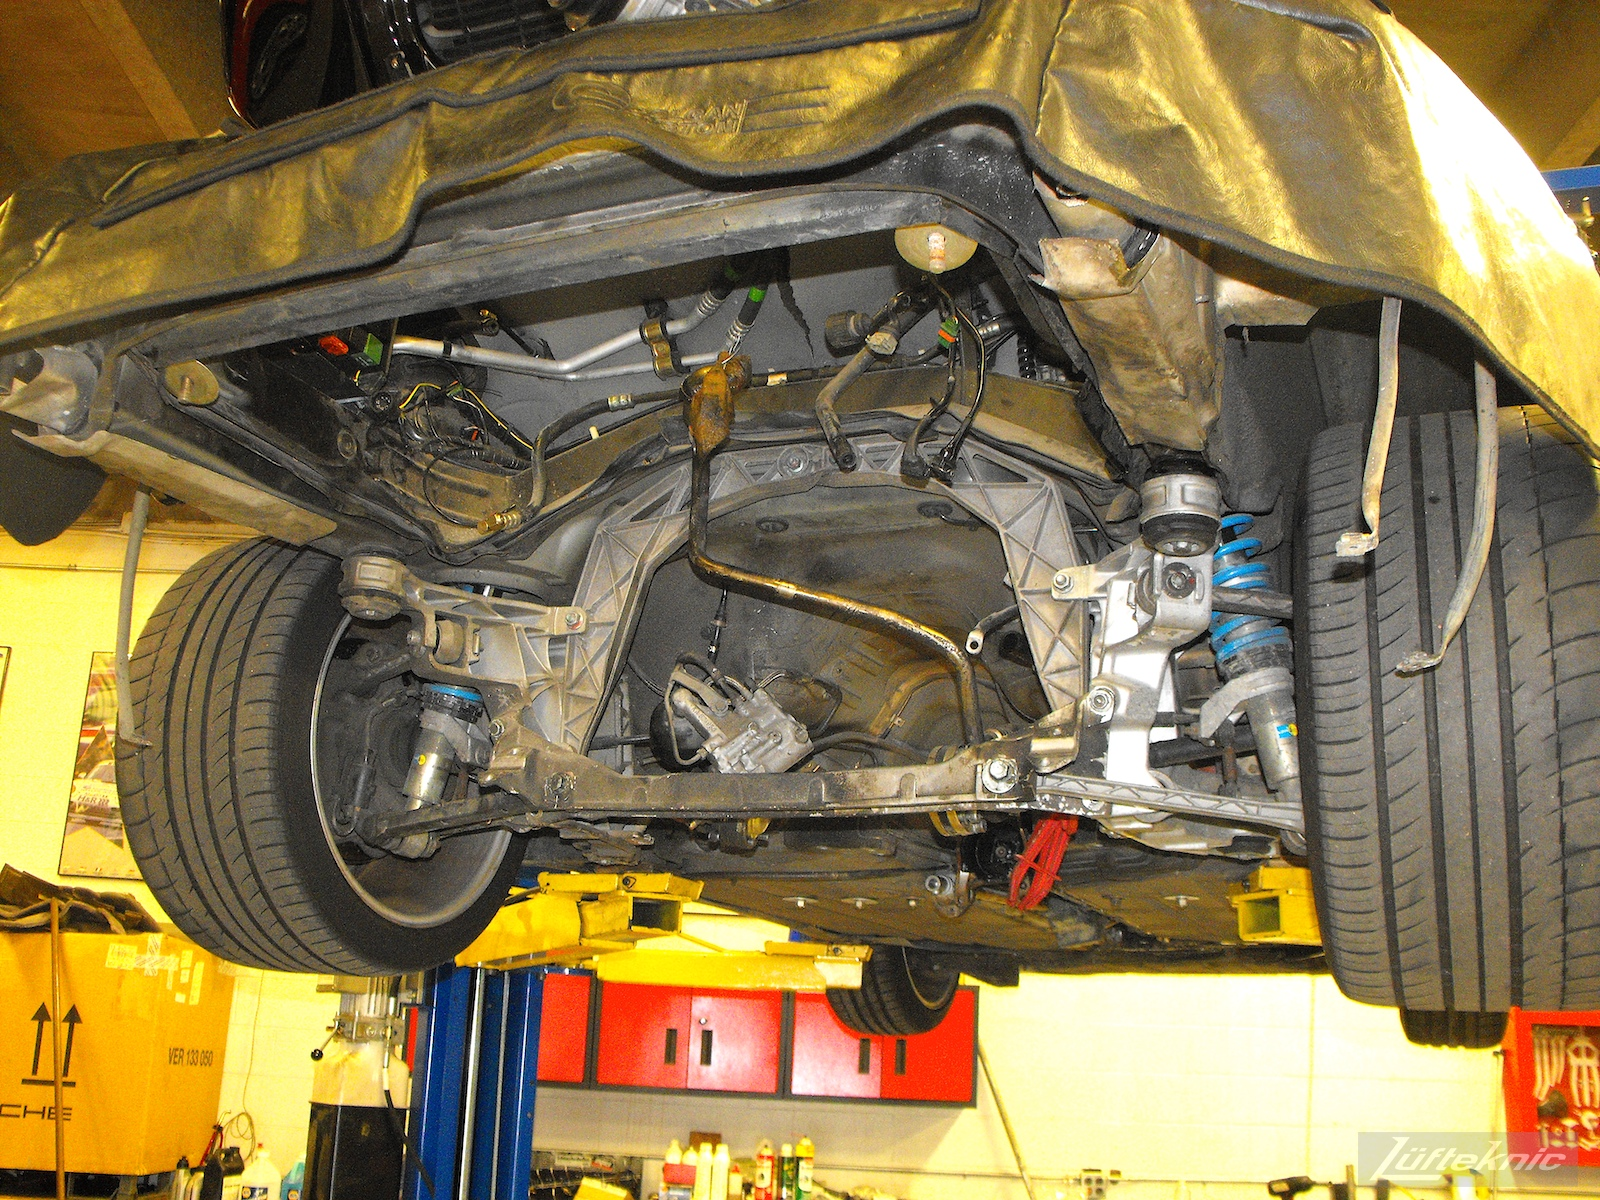 A Porsche 993TT underbody with the engine removed and rear tires and suspension exposed.